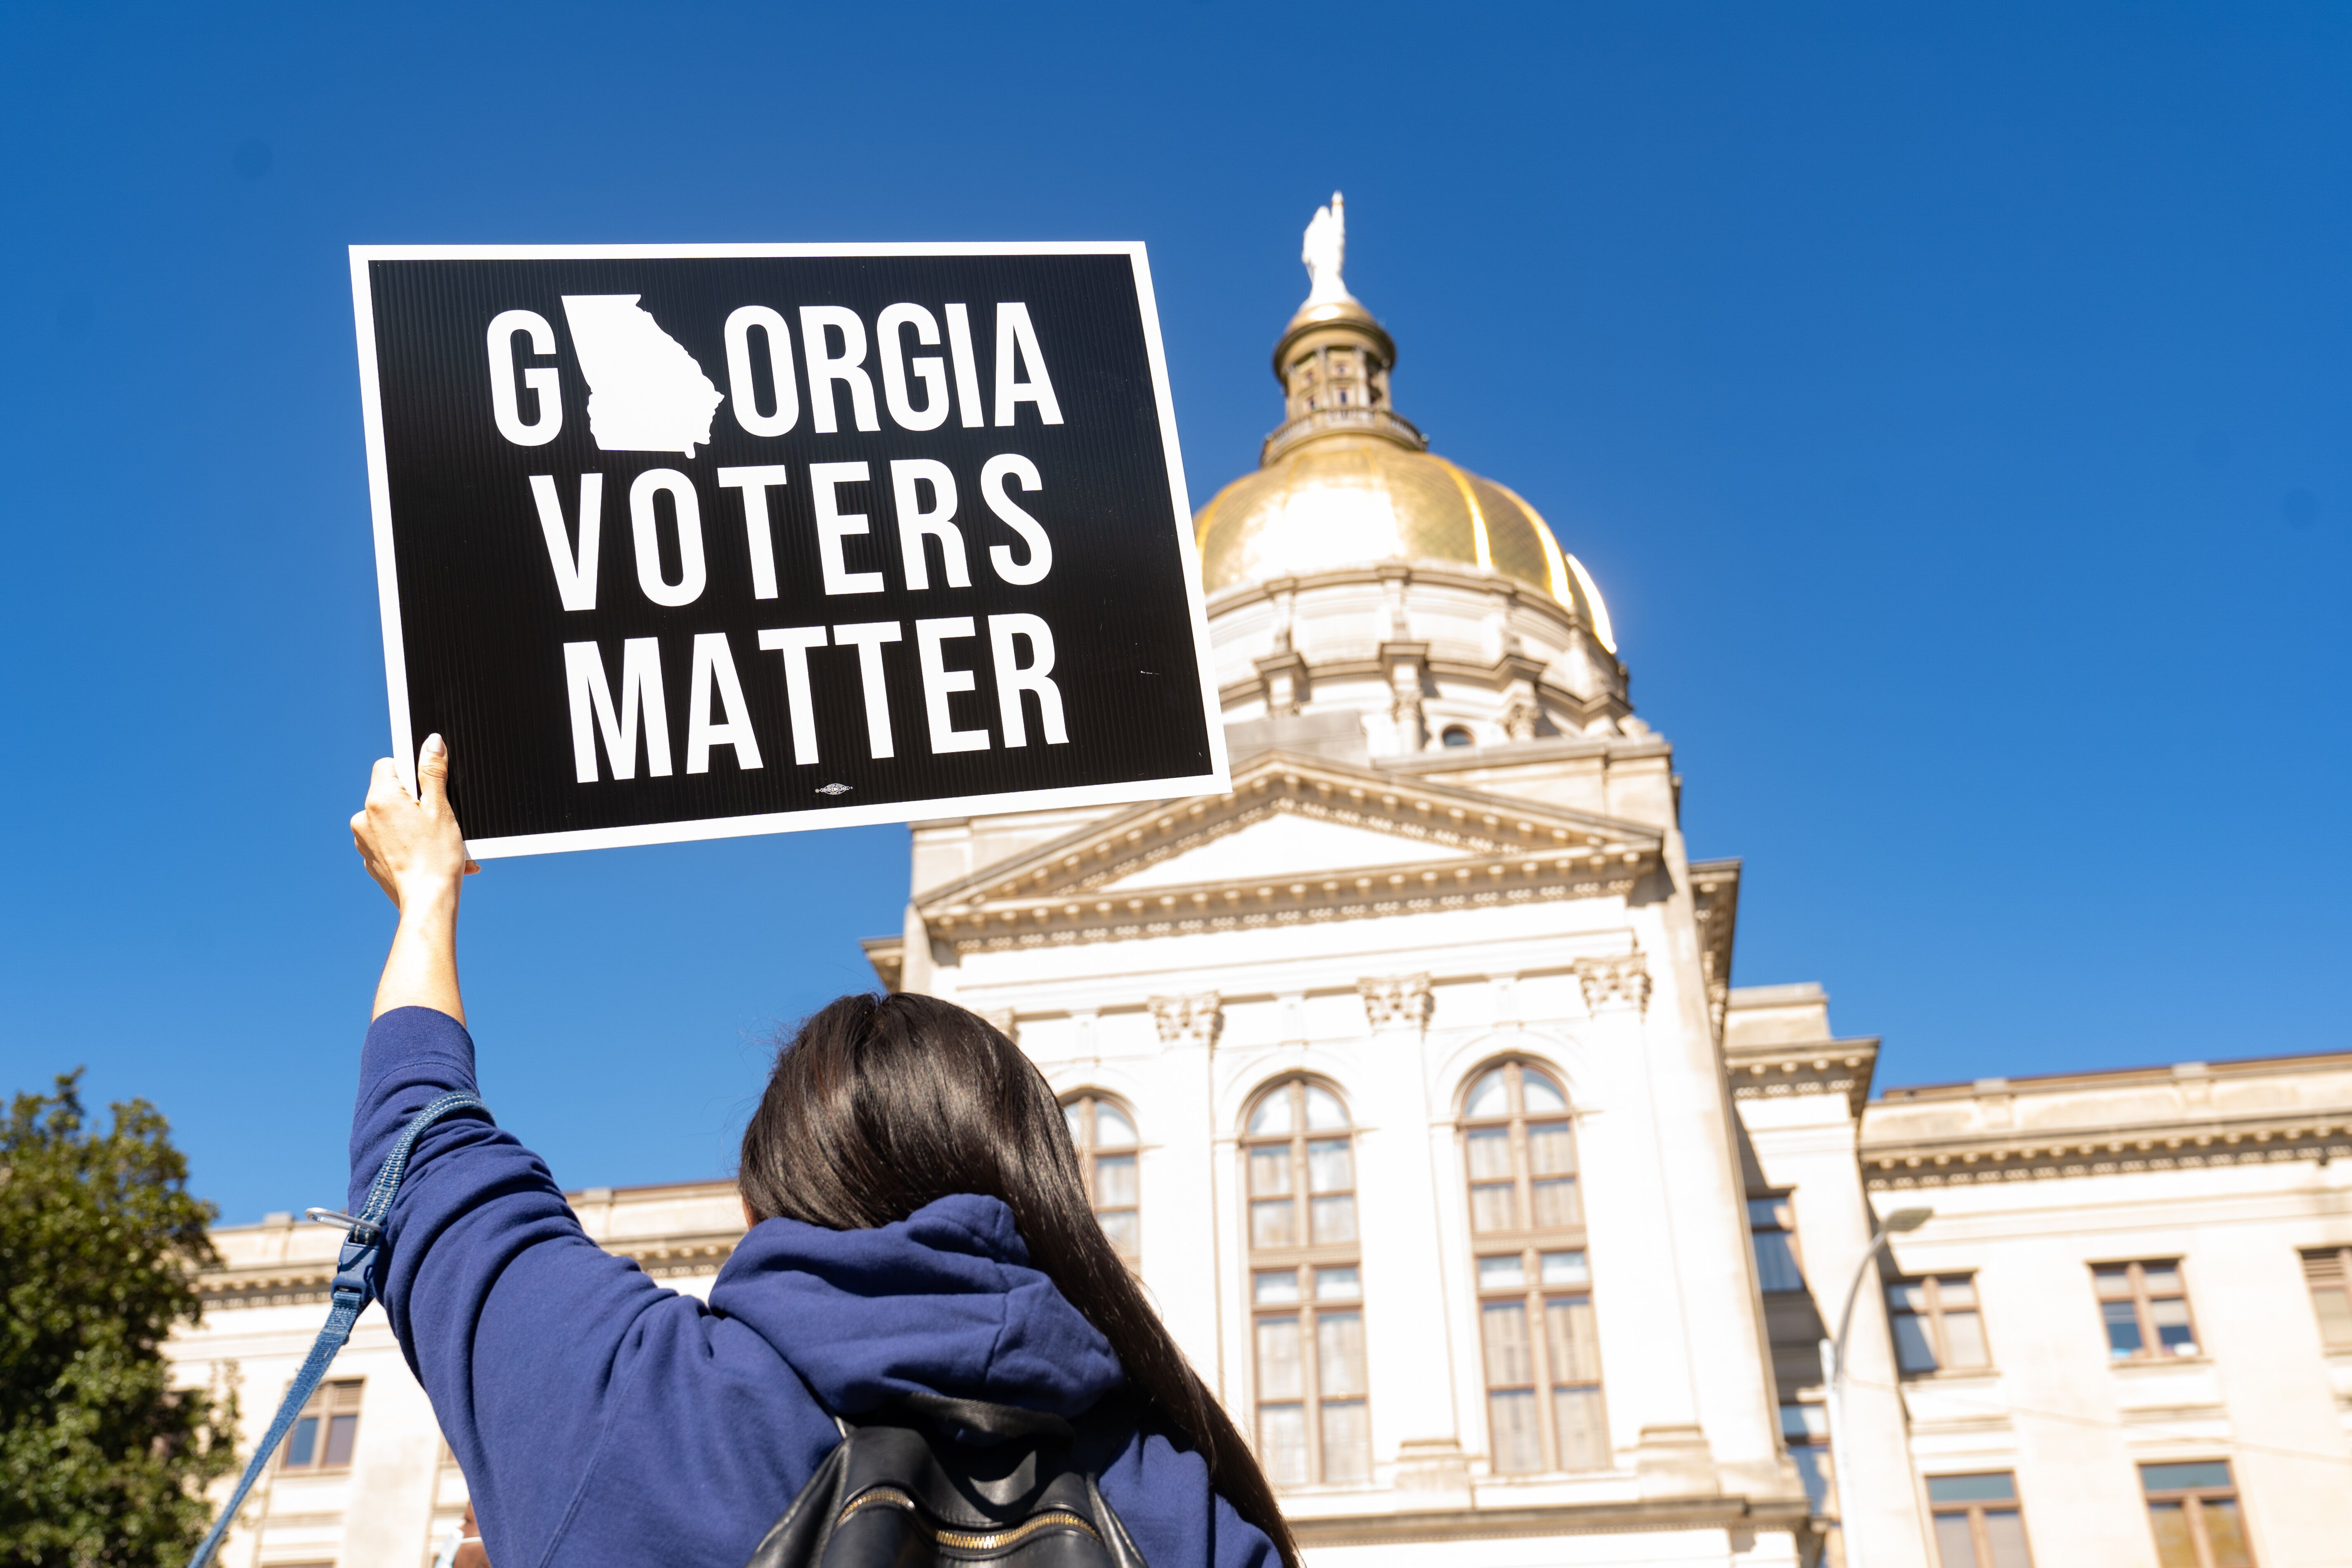 A demonstrator stands outside of the Georgia Capitol building in Atlanta on March 3, to oppose a measure that would dramatica